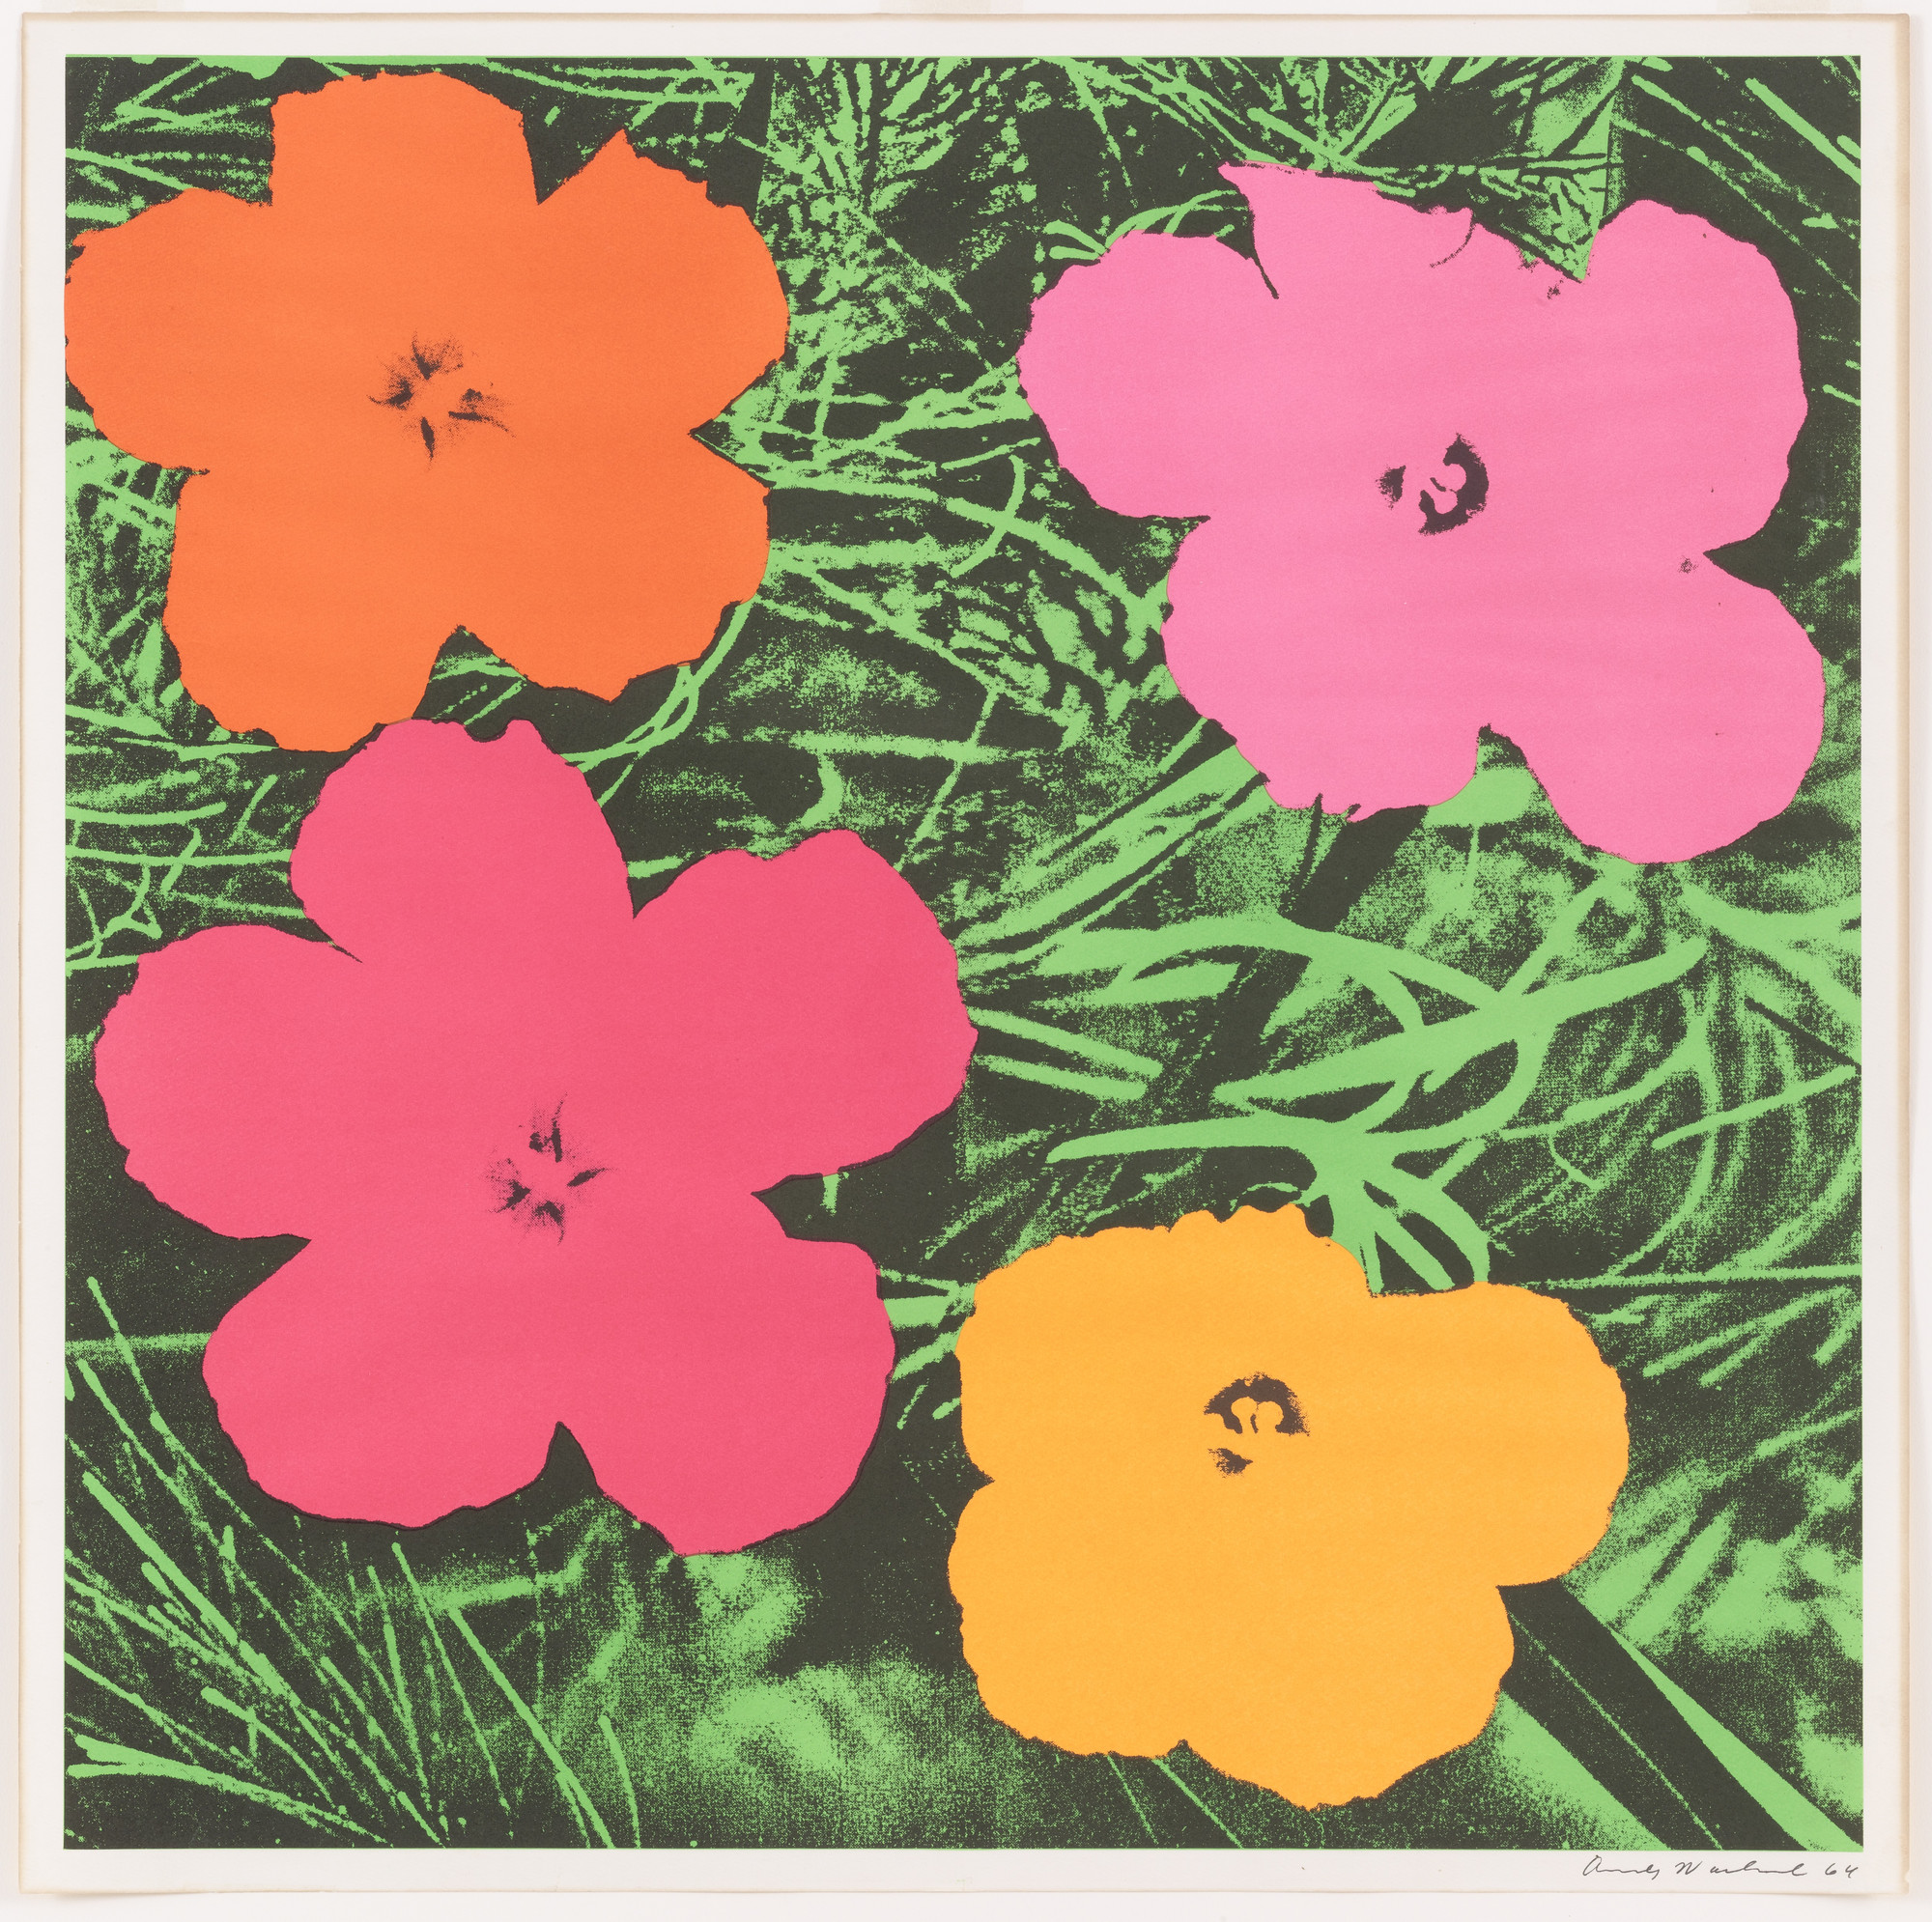 Andy Warhol. Flowers. 1964